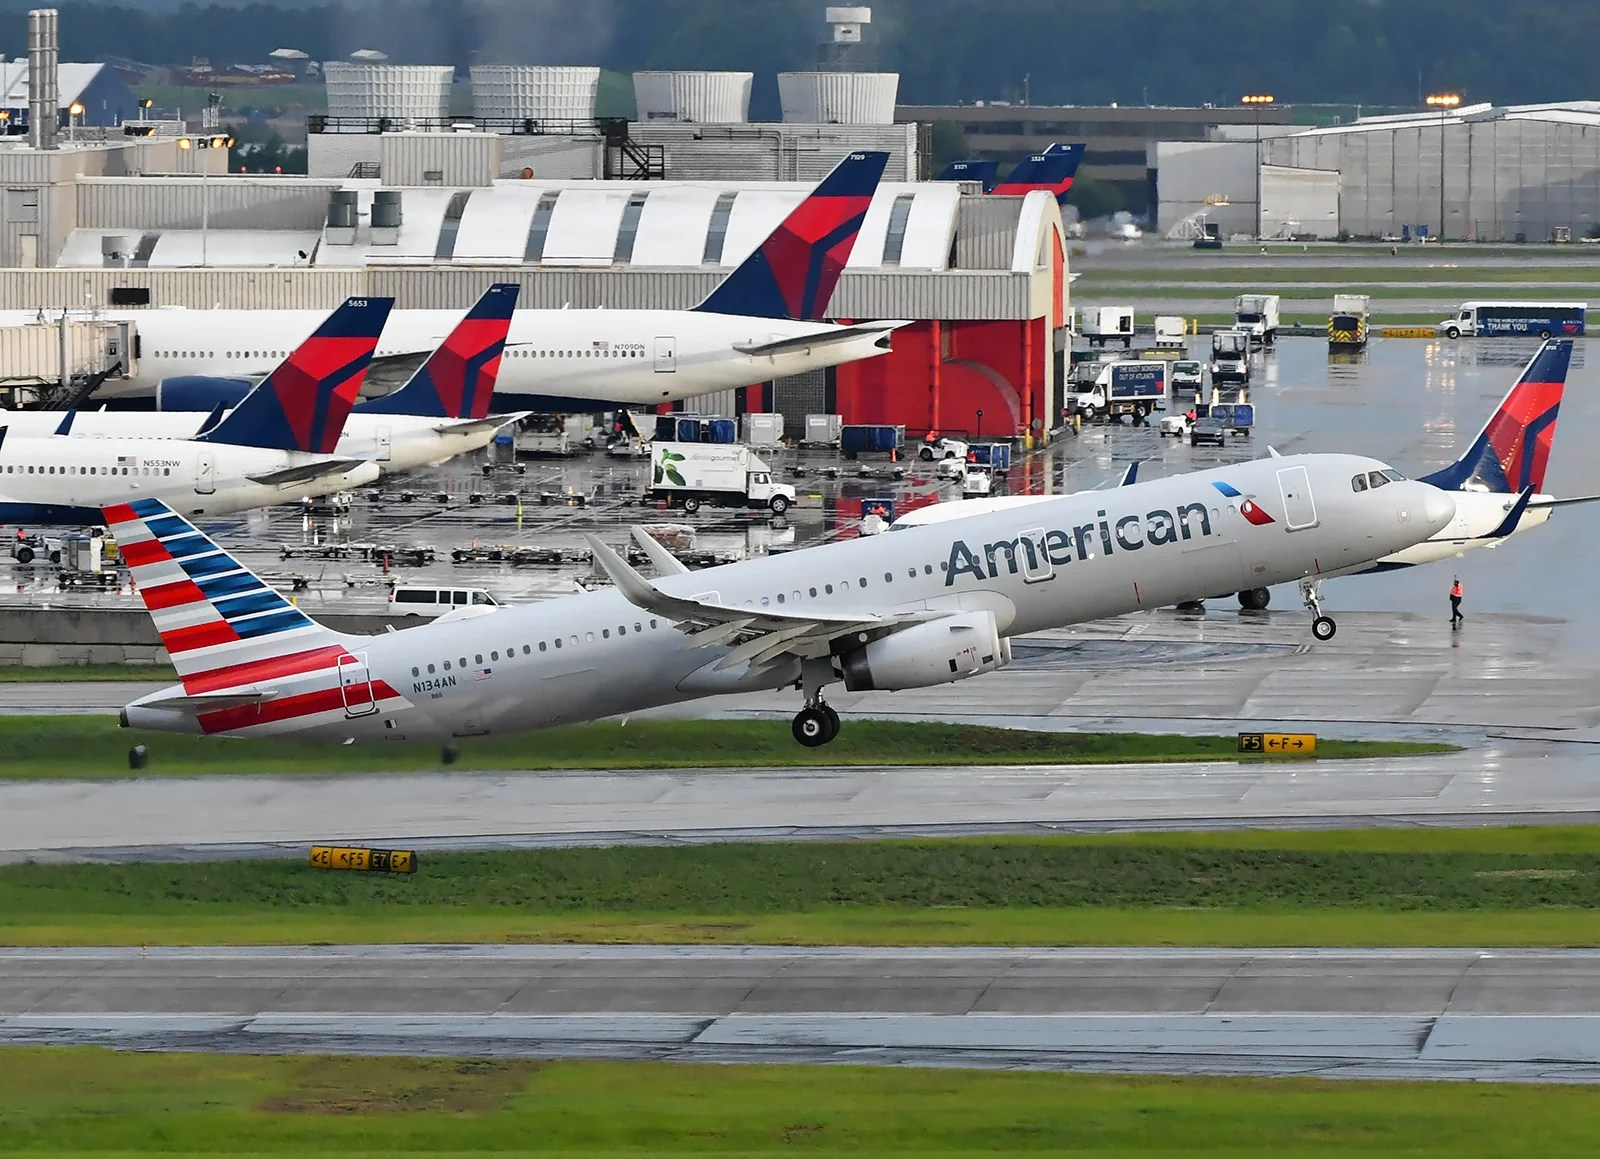 American Airlines Adds Features to Its New Award Booking Tool, With Disappointing Results